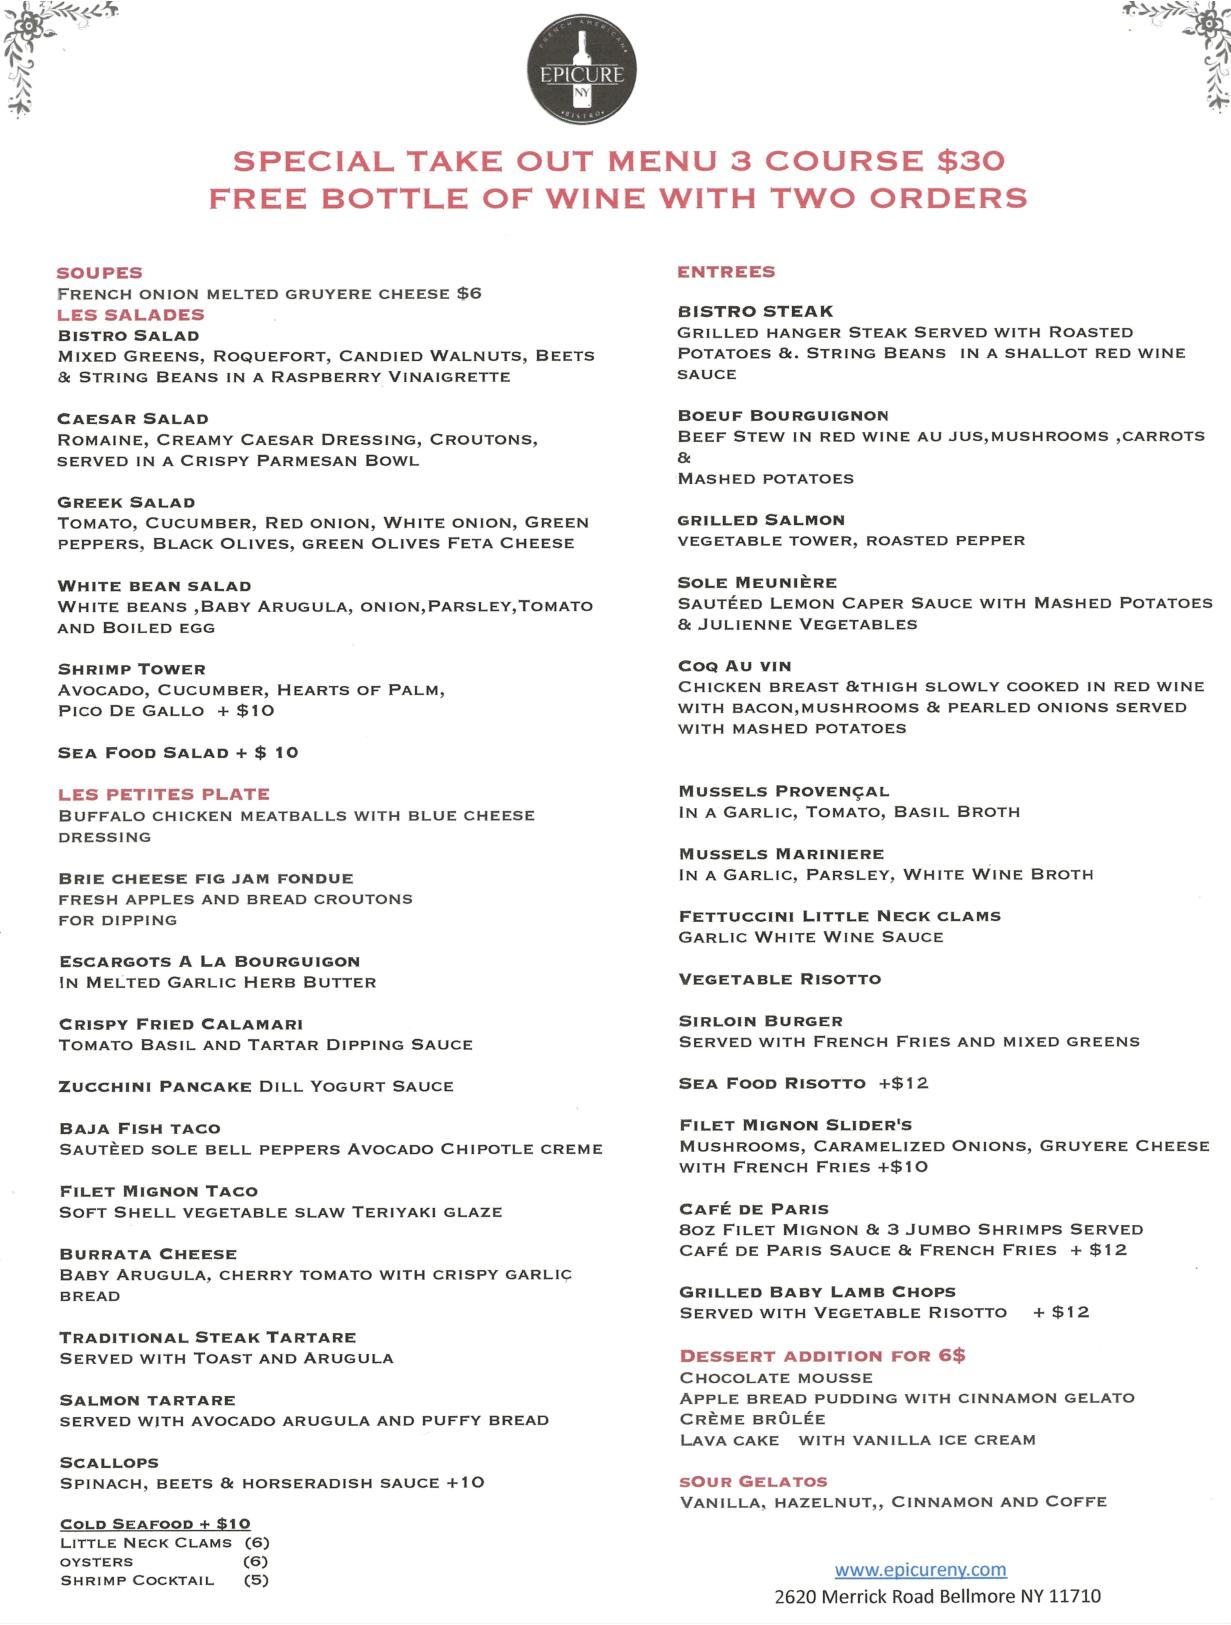 Take-out Specials $30